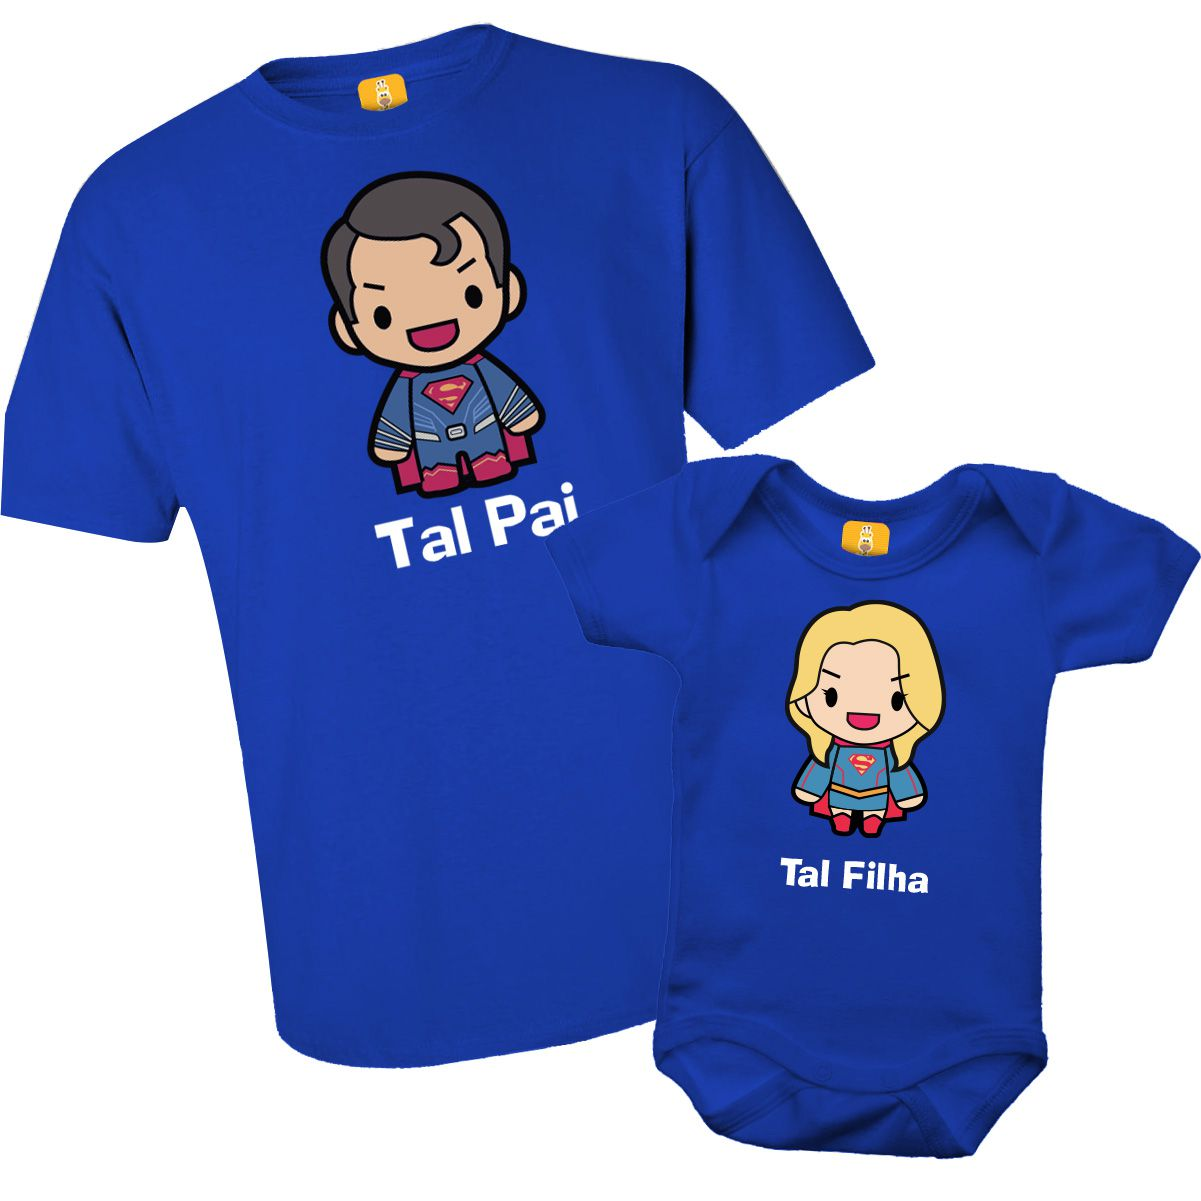 Kit camiseta - Tal pai, Tal filha Superman